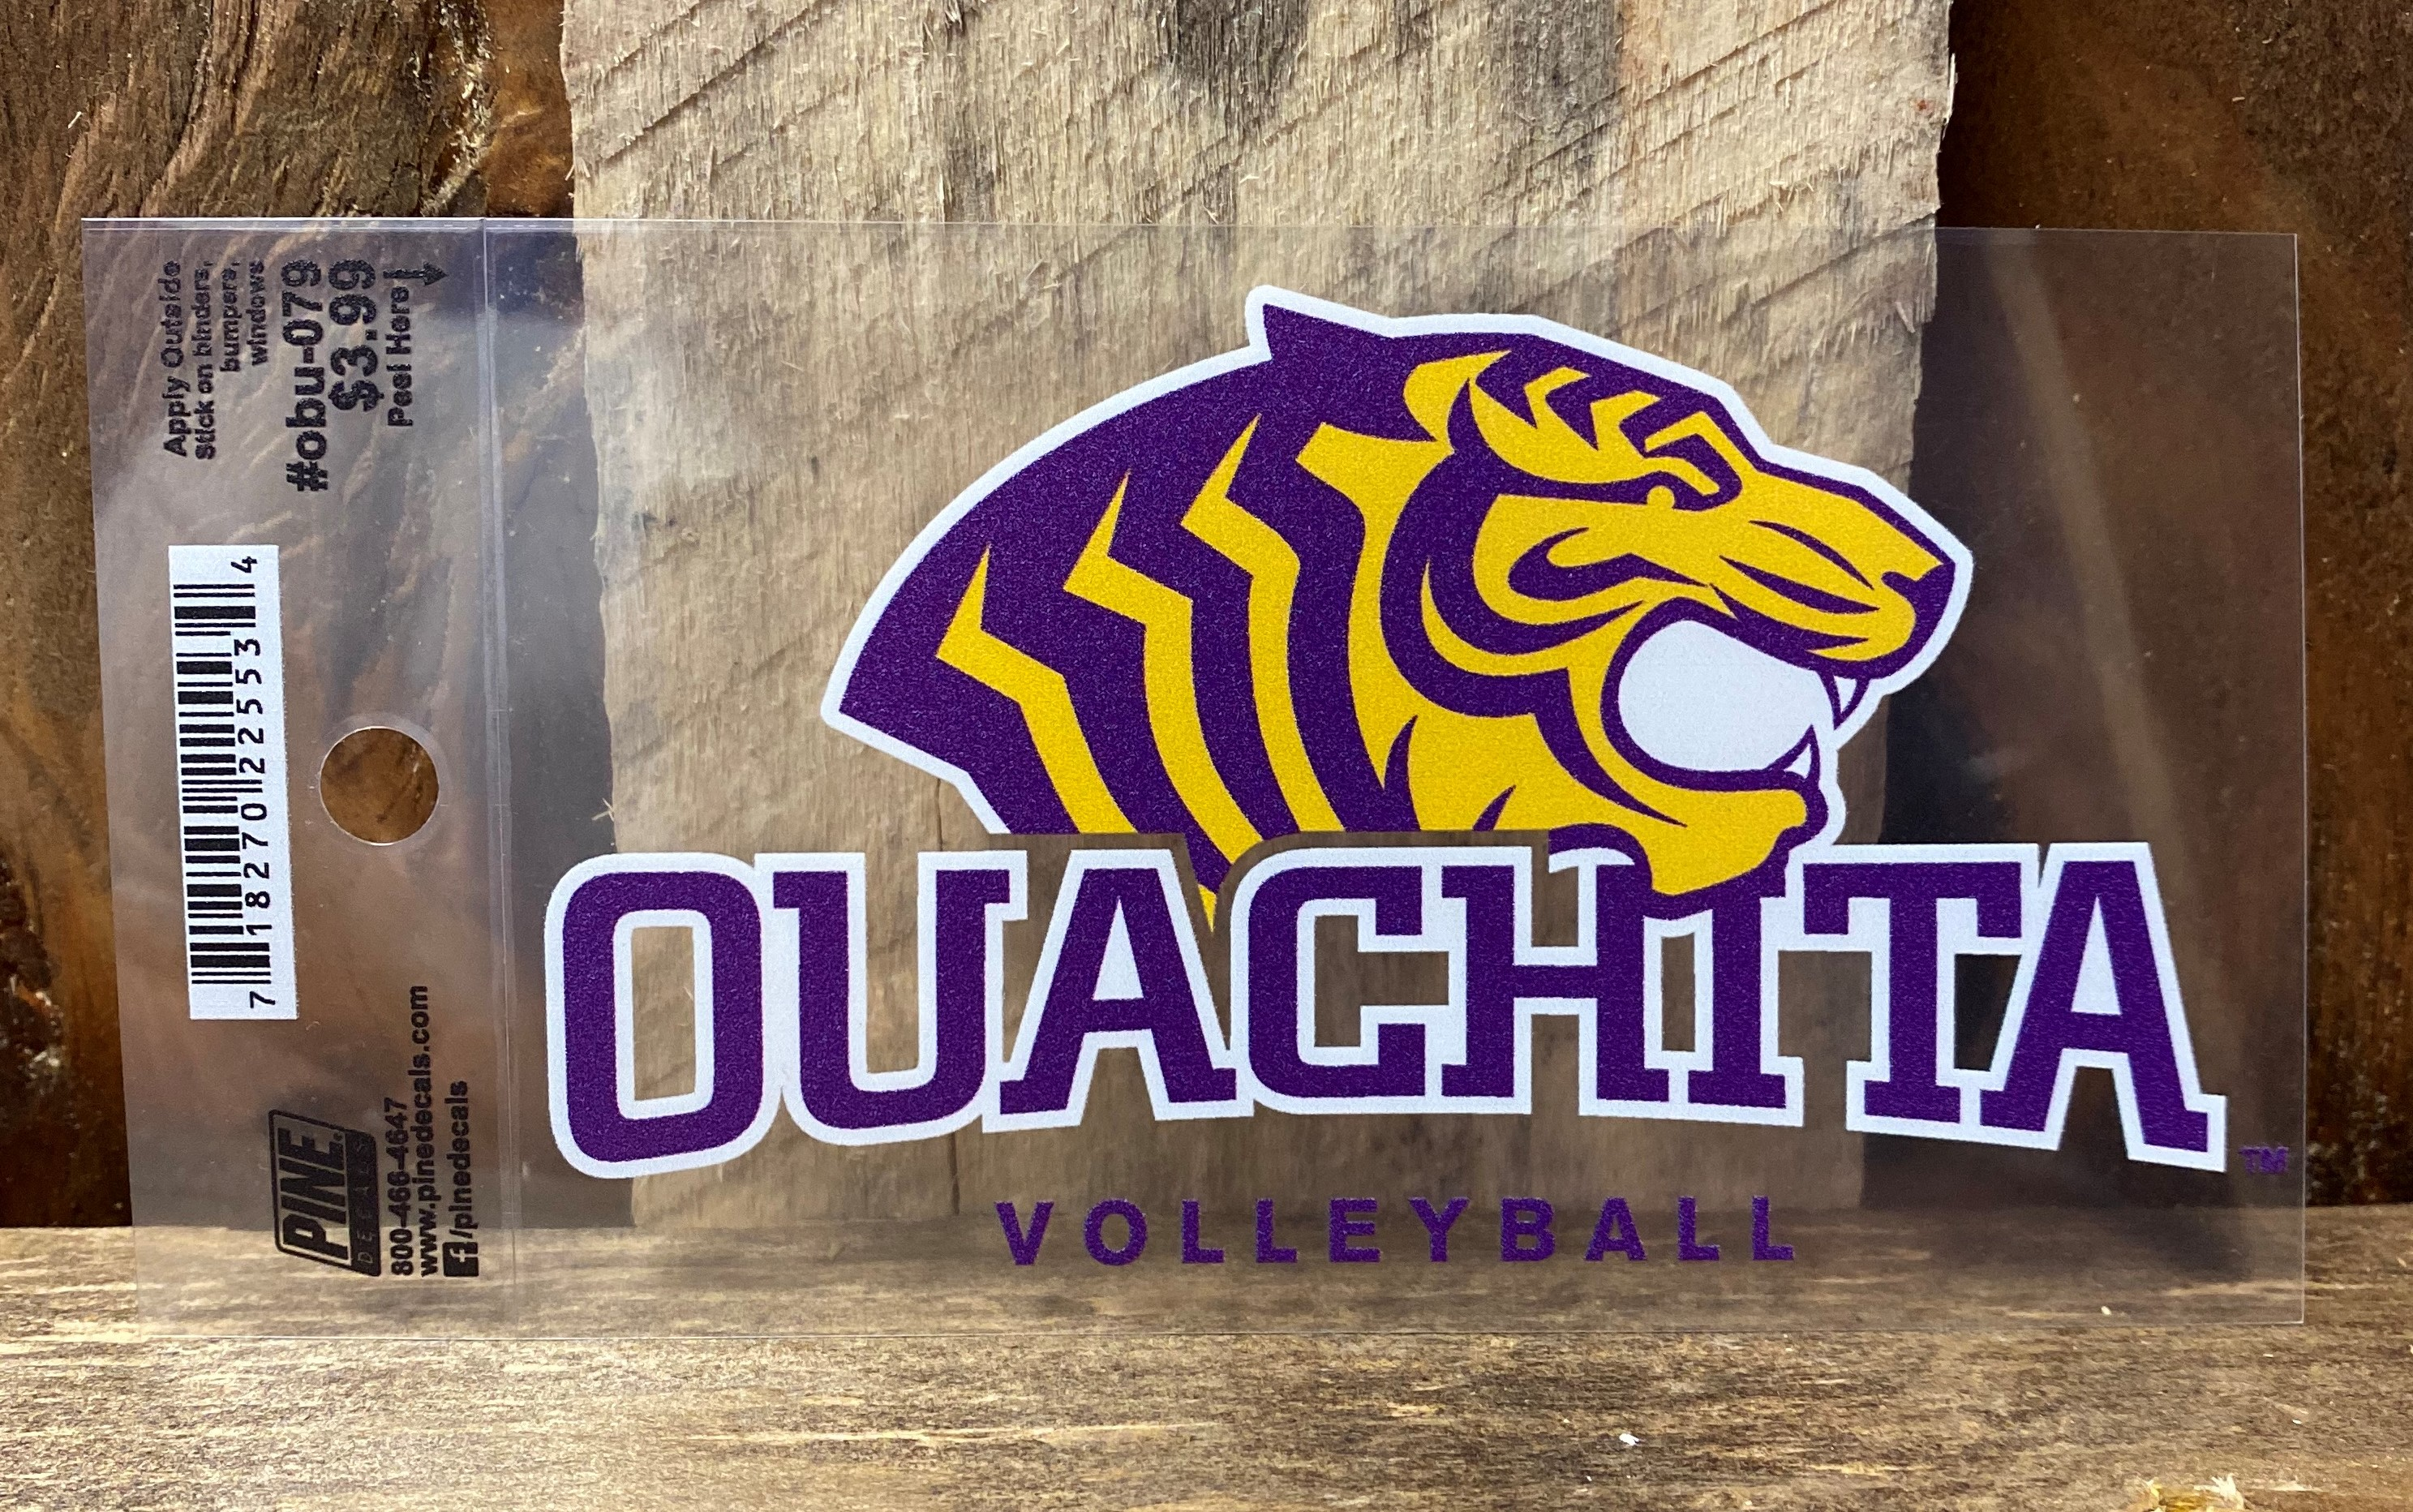 OUACHITA VOLLEYBALL CAR DECAL